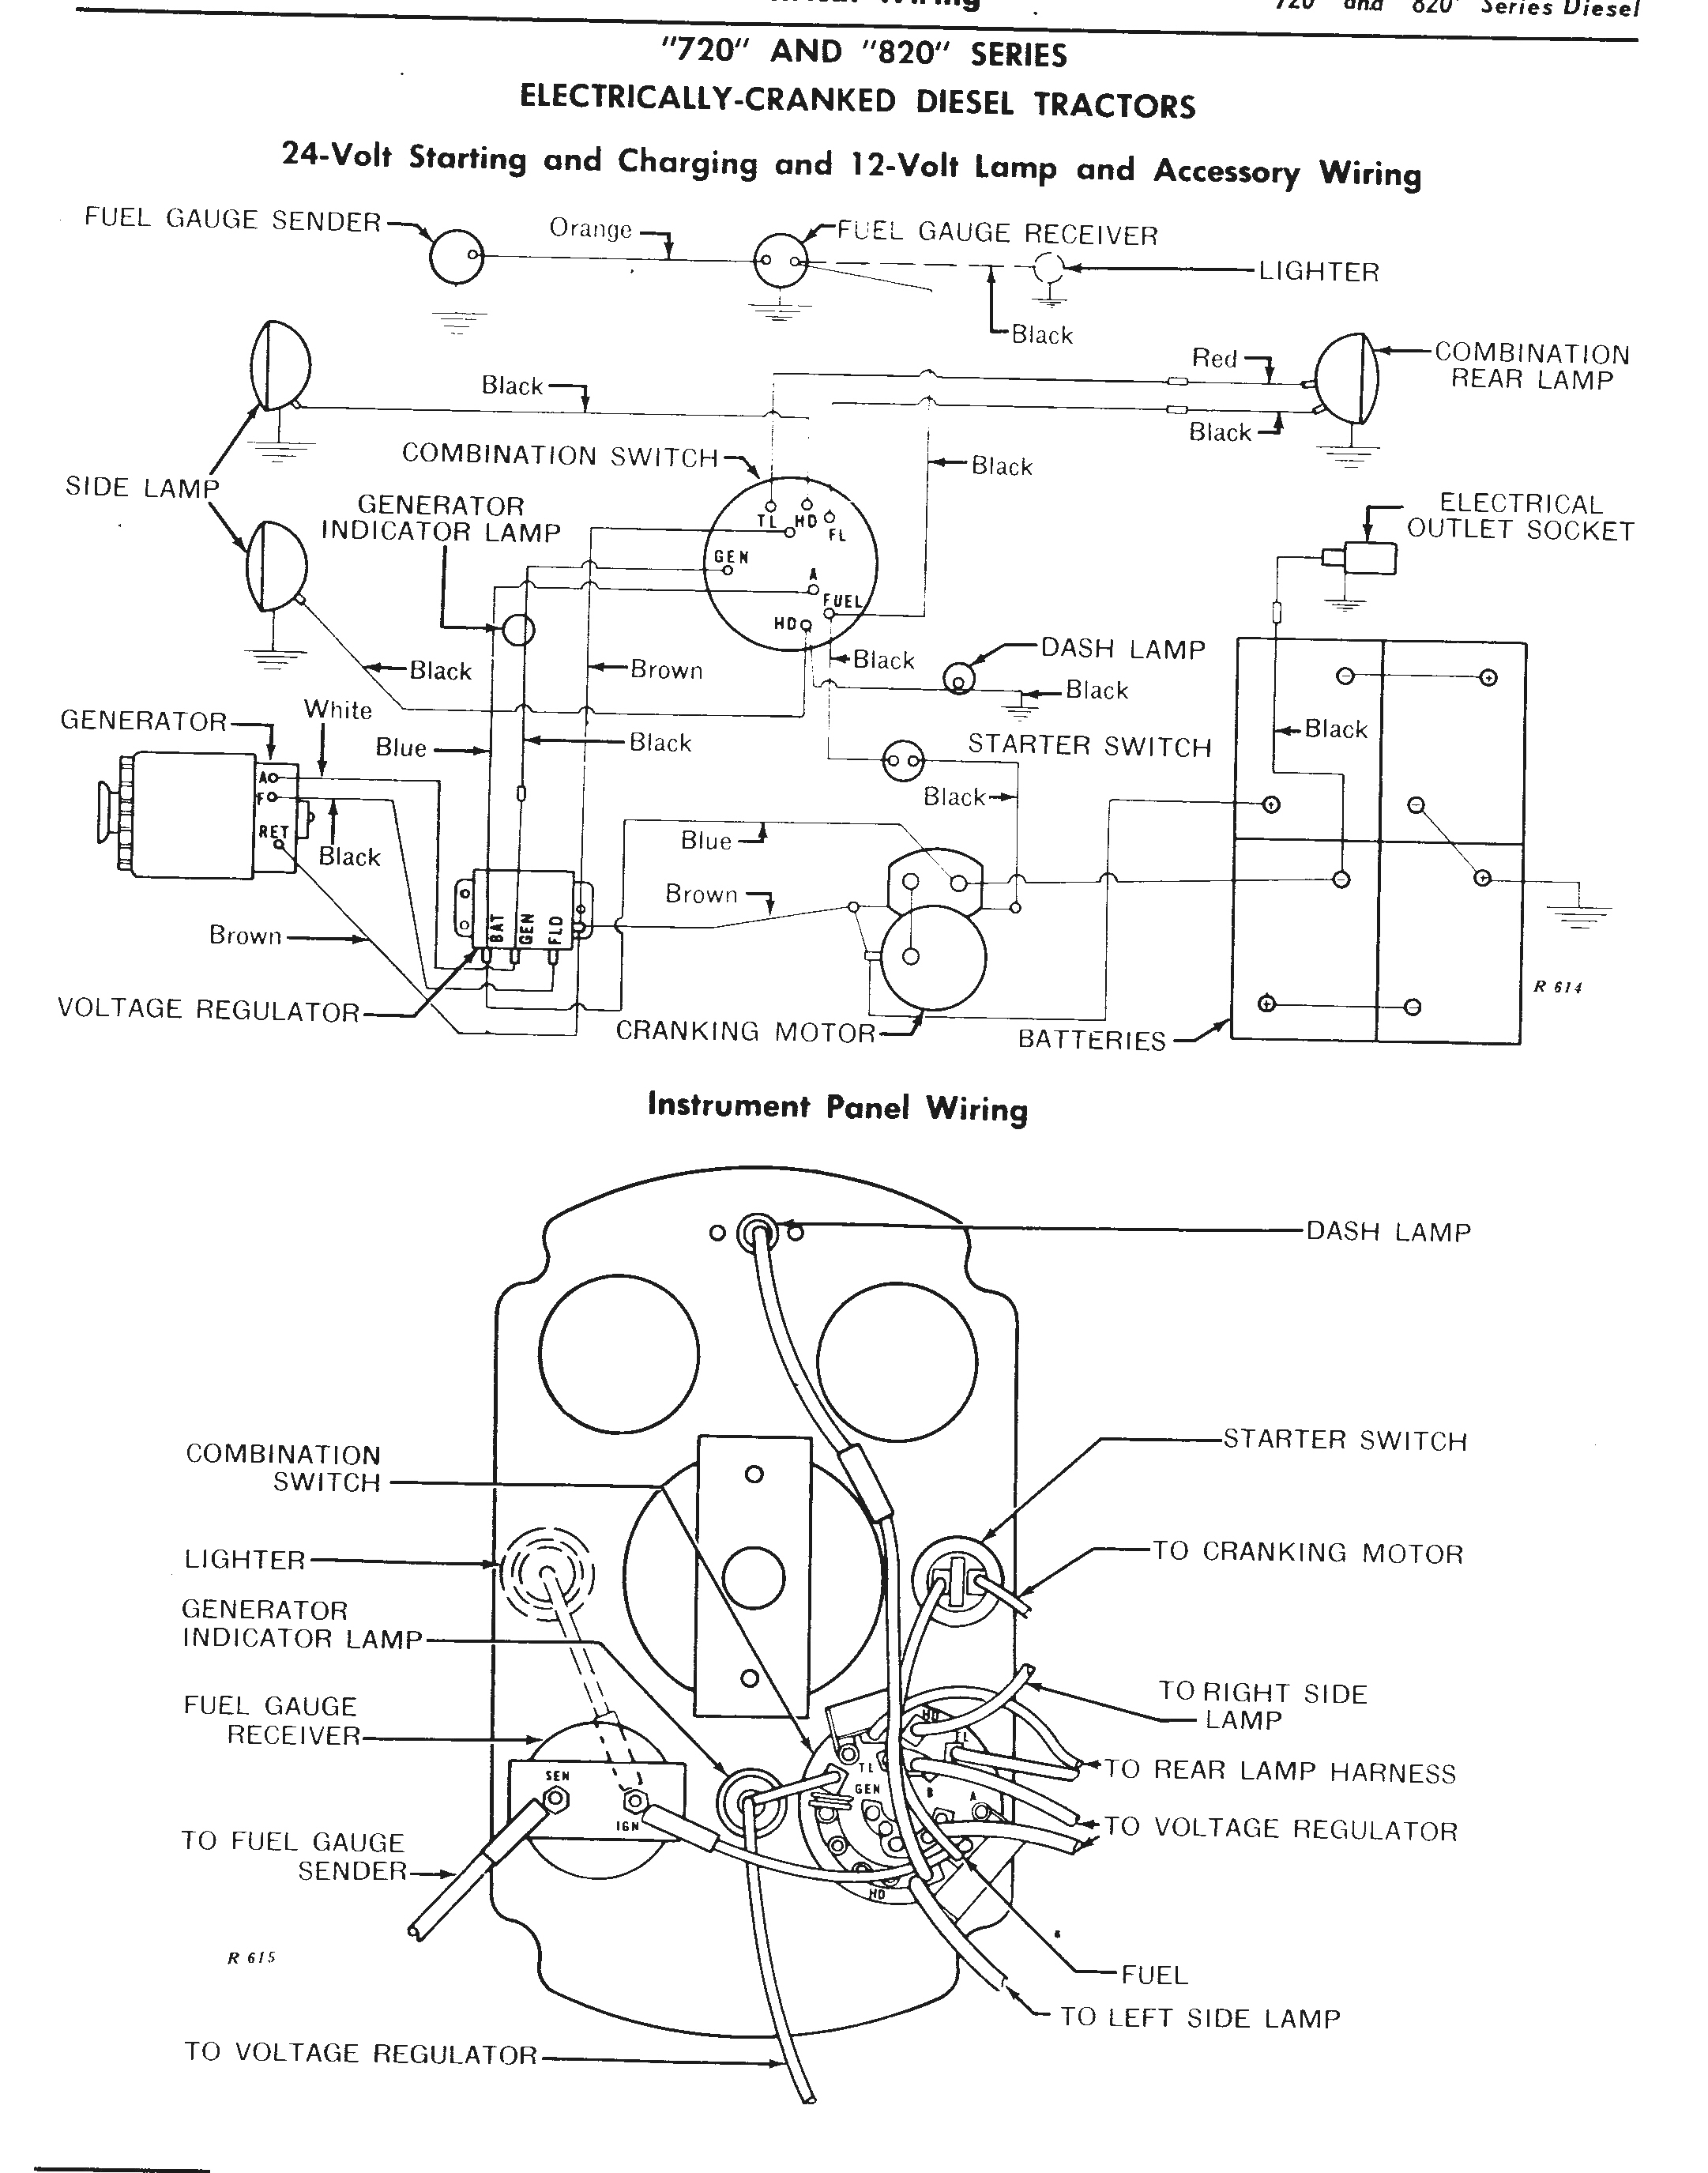 the john deere 24 volt electrical system explainedJohn Deere 4020 Fuel Guage Wiring Diagram #10